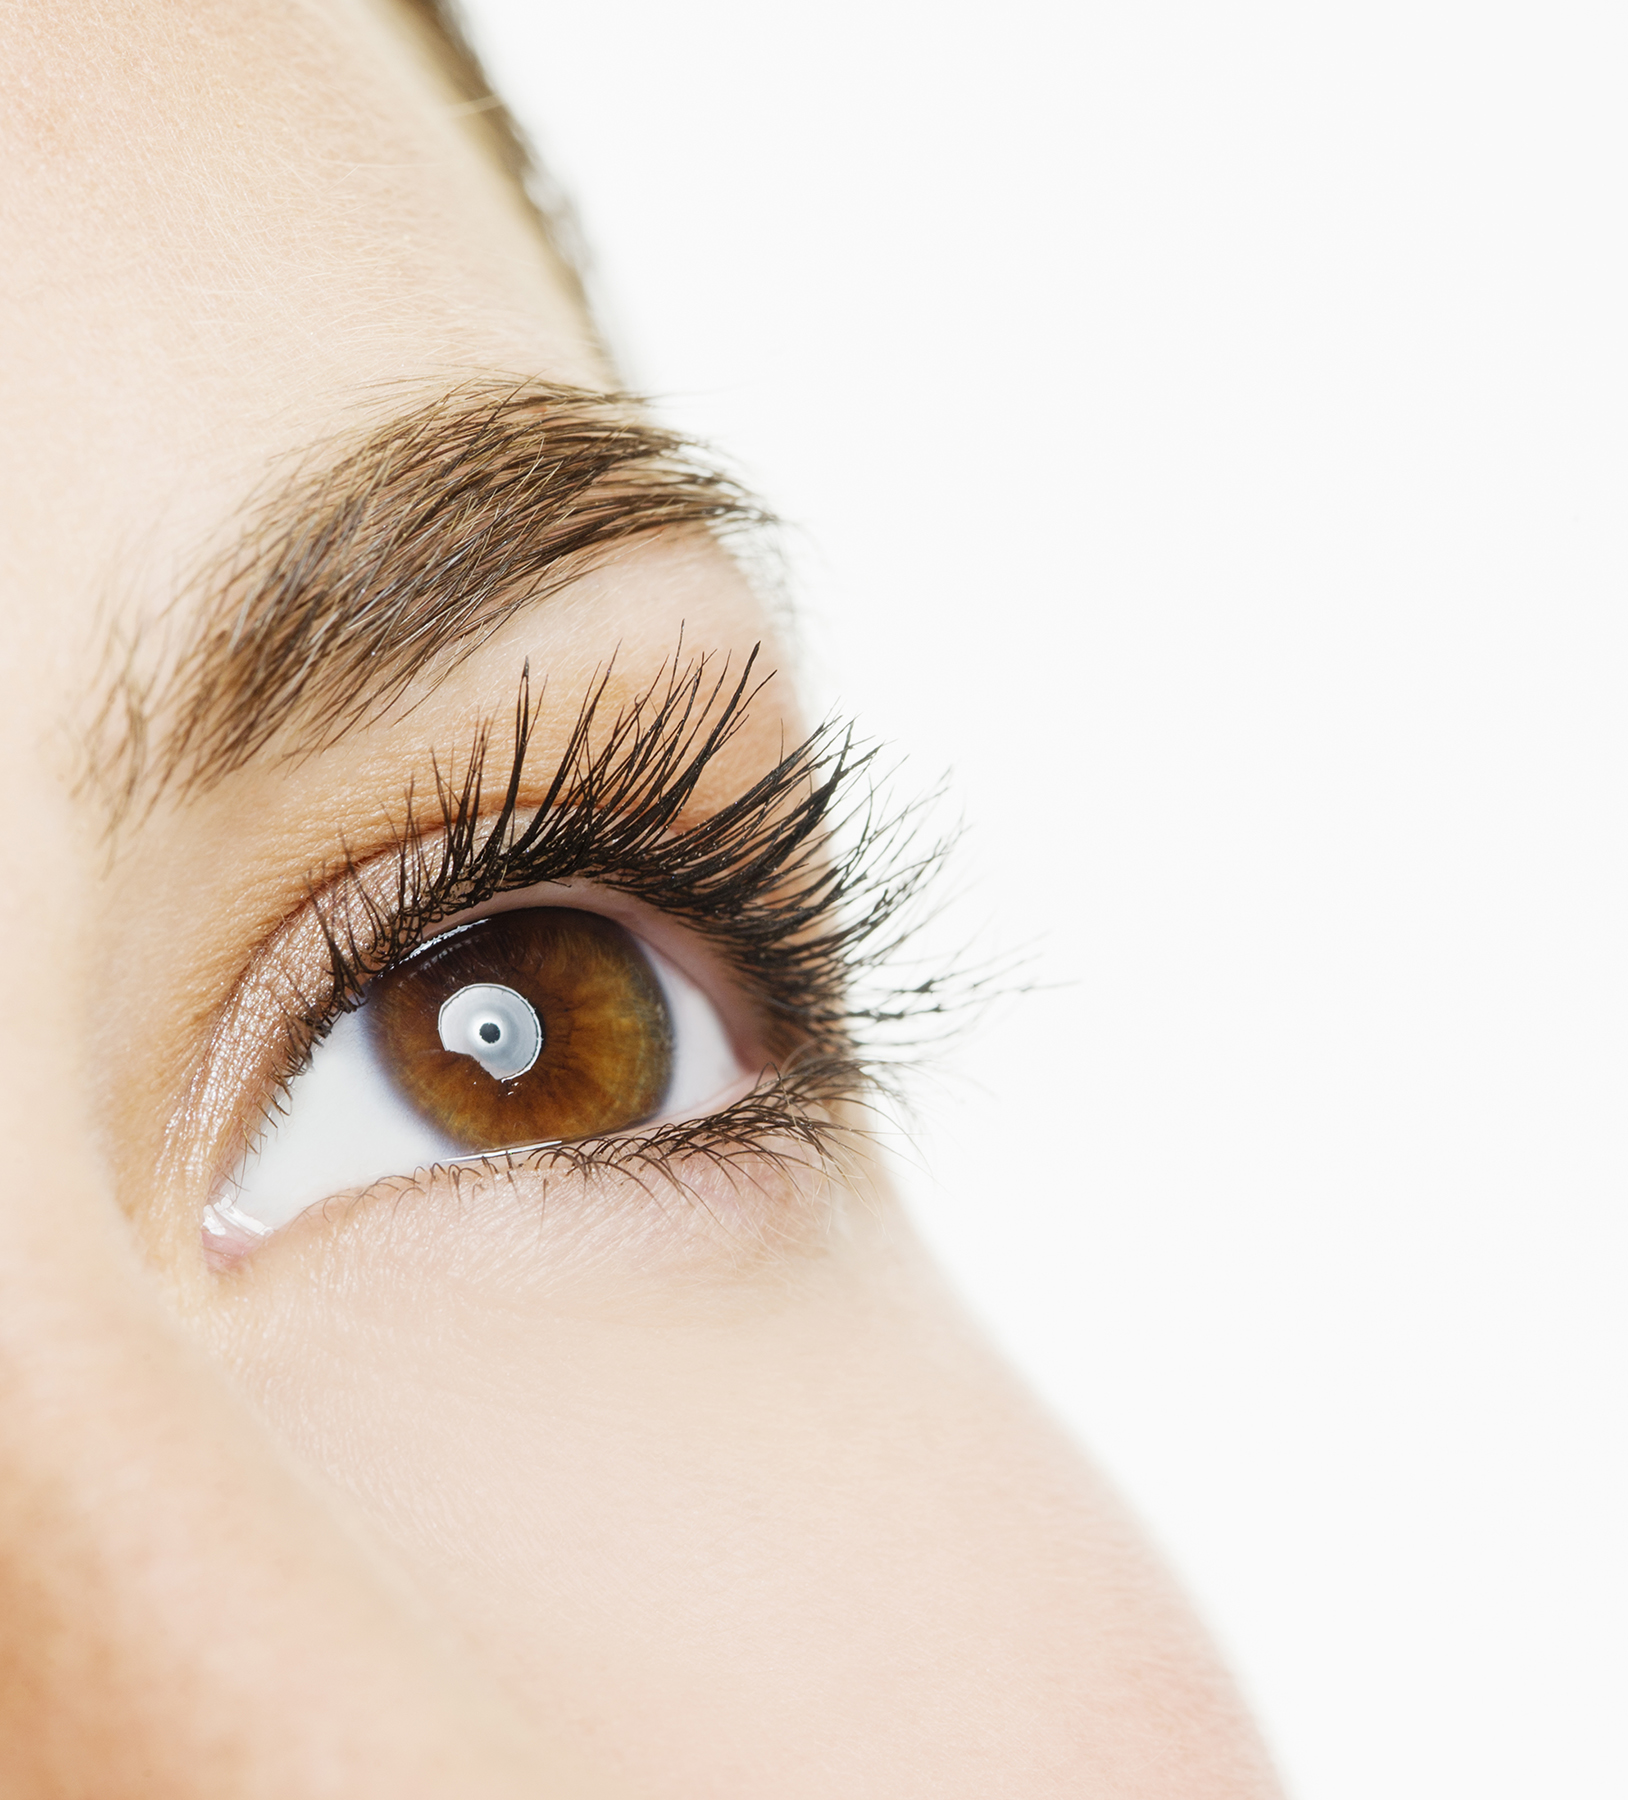 11 Important Habits That Keep Your Eyes Healthy